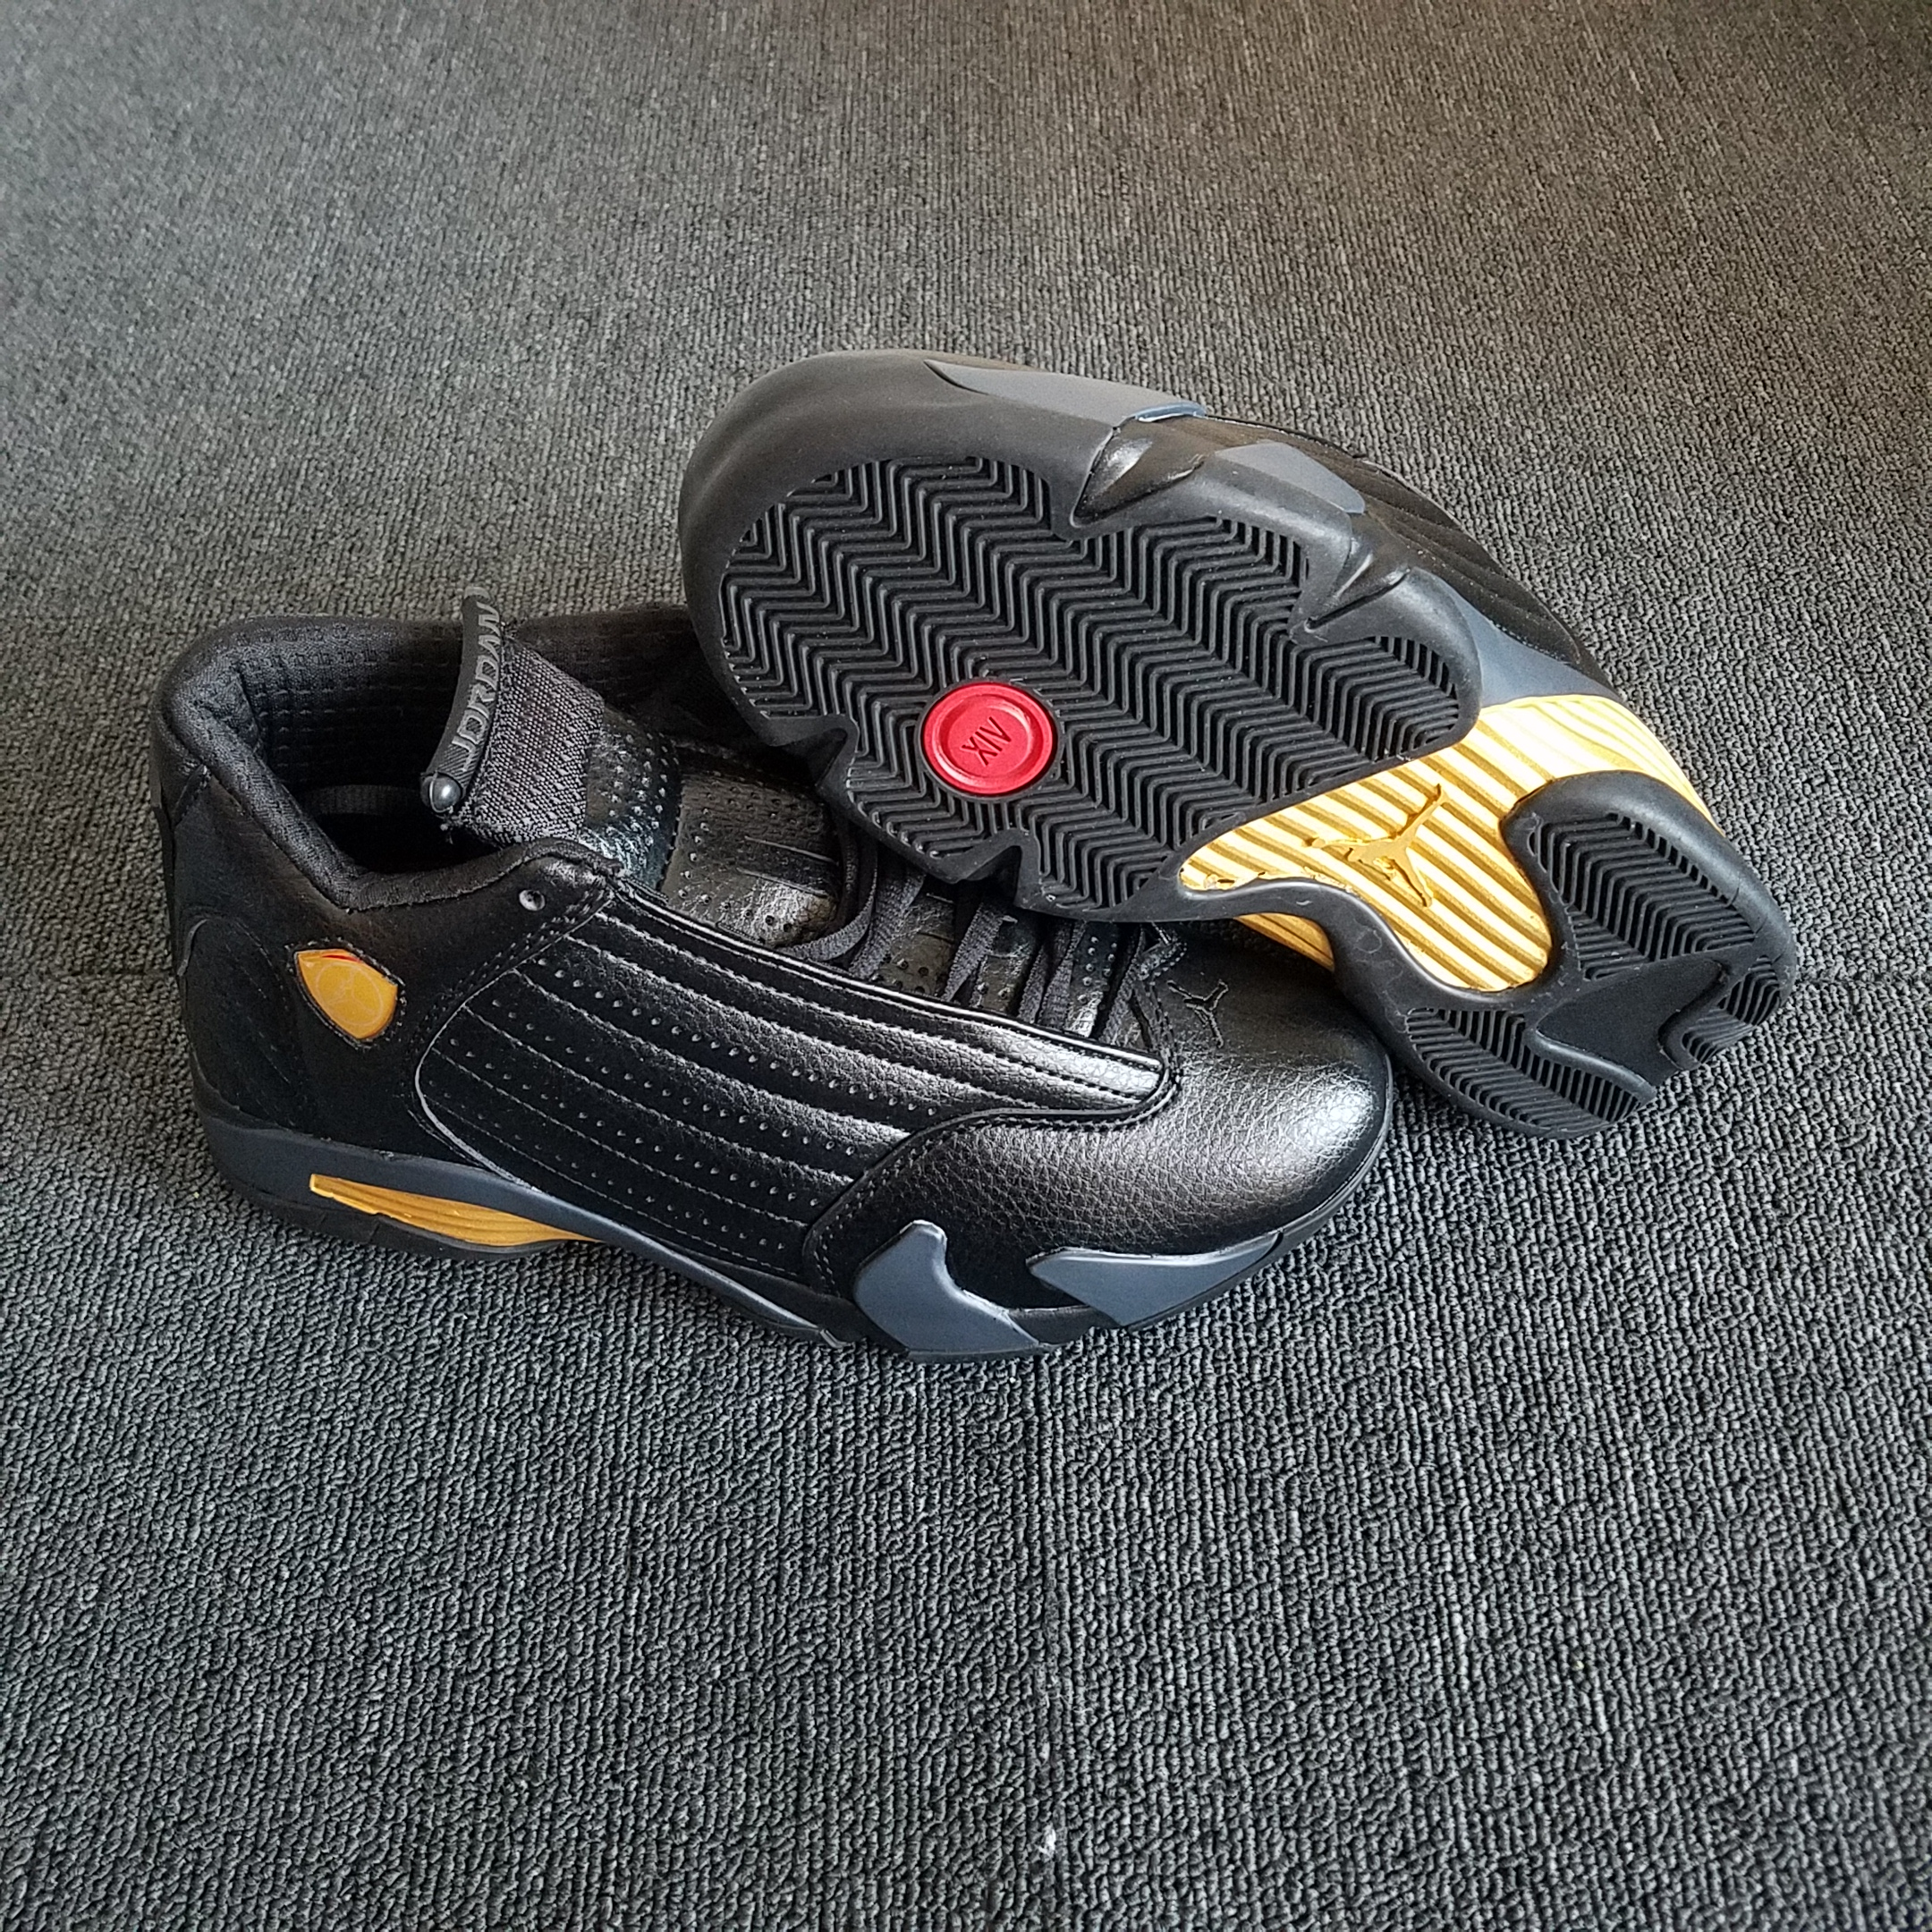 New Air Jordan 14 Retro Black Gold Shoes